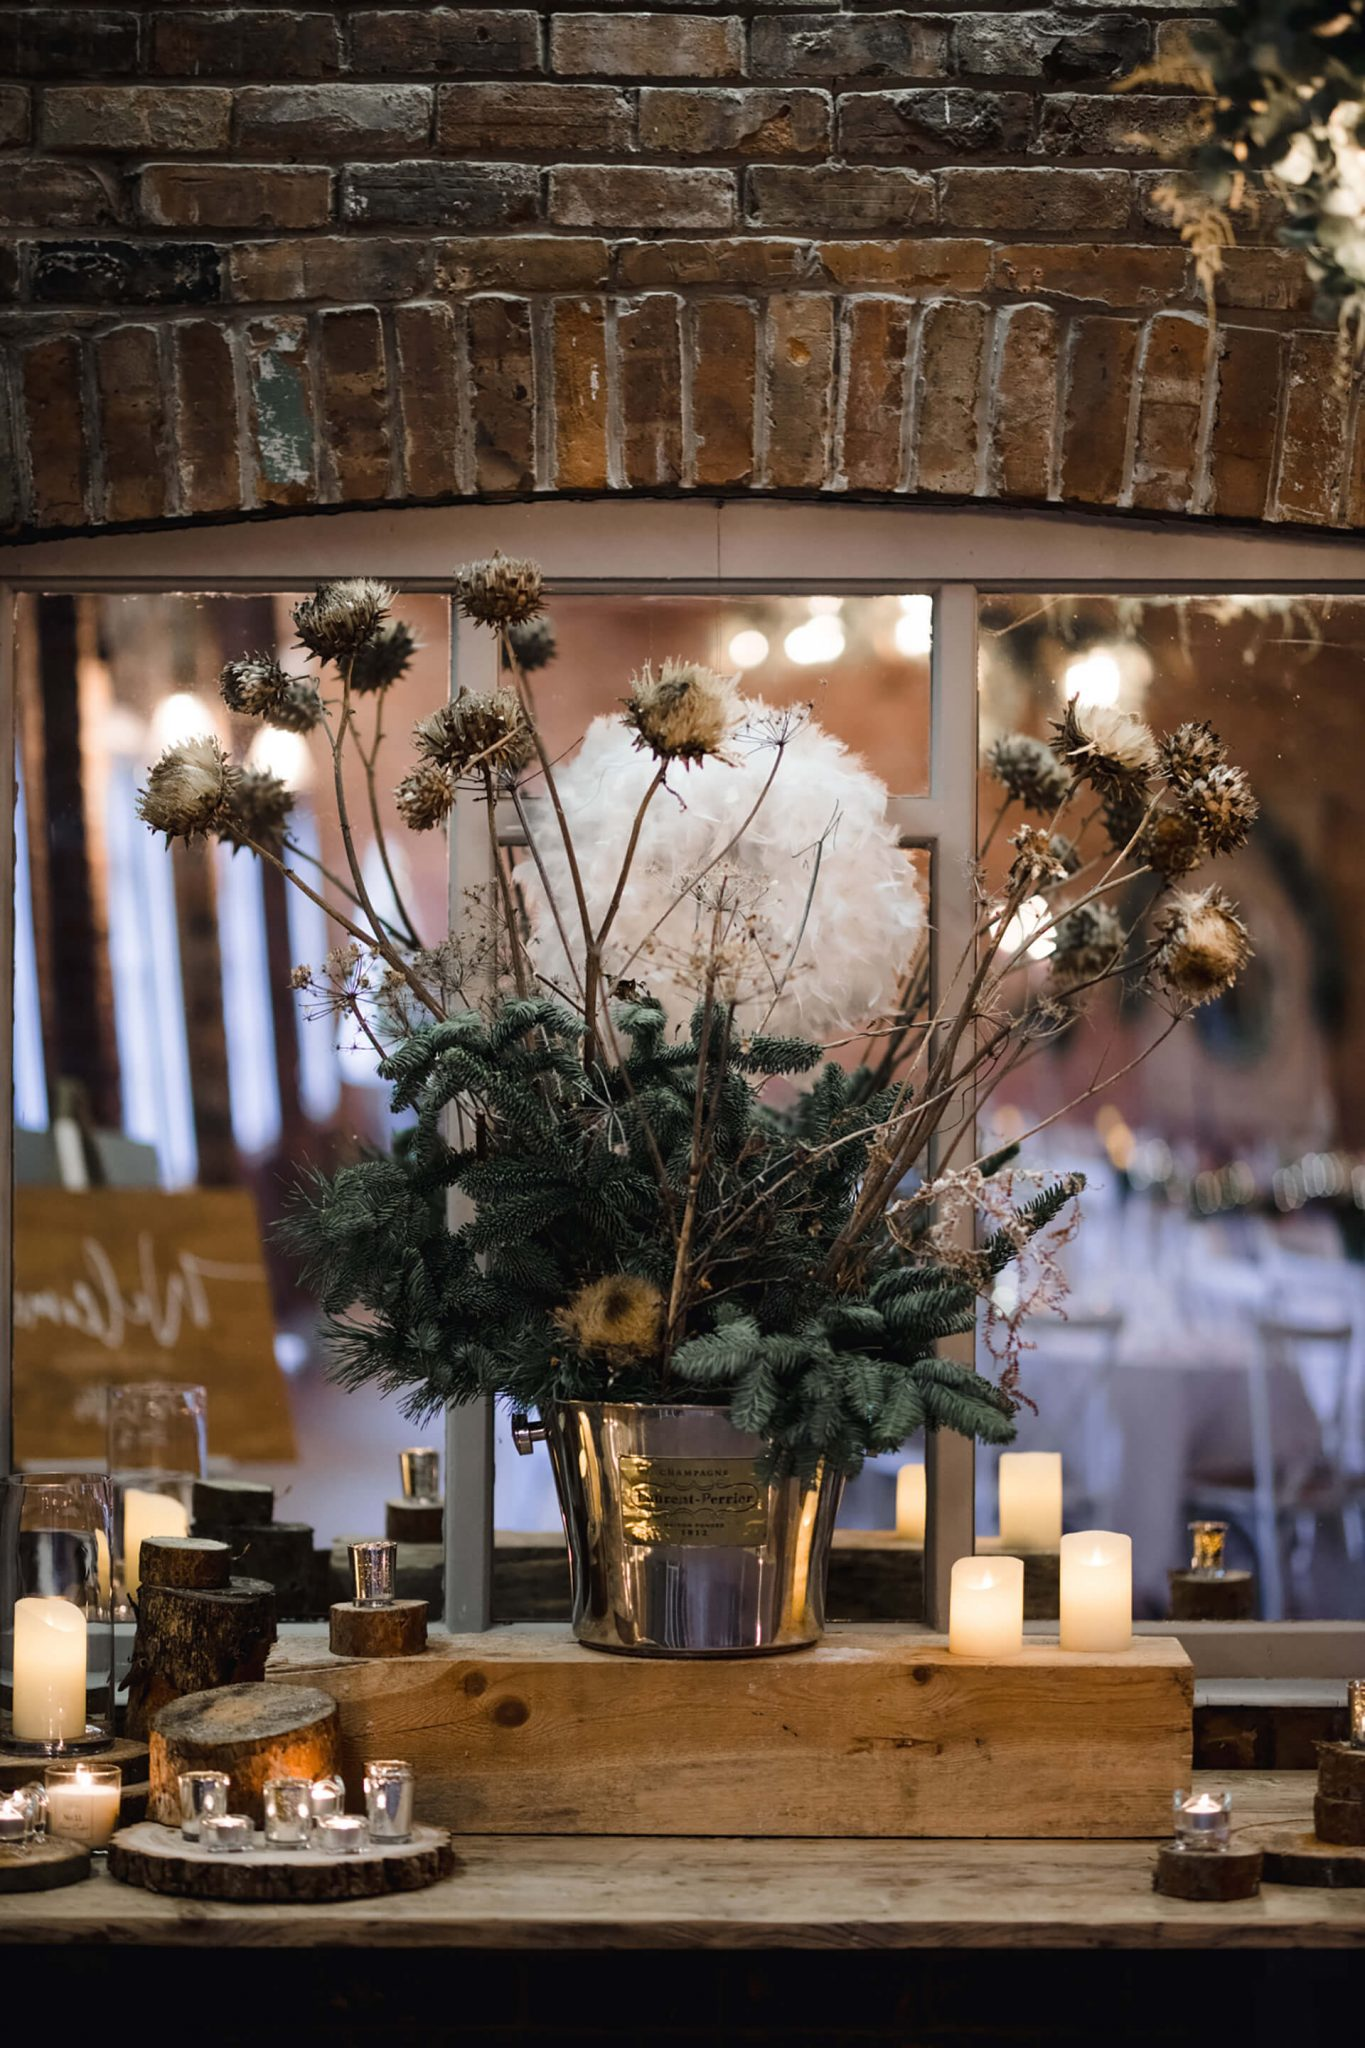 Christmas wedding decorations with logs and tealights